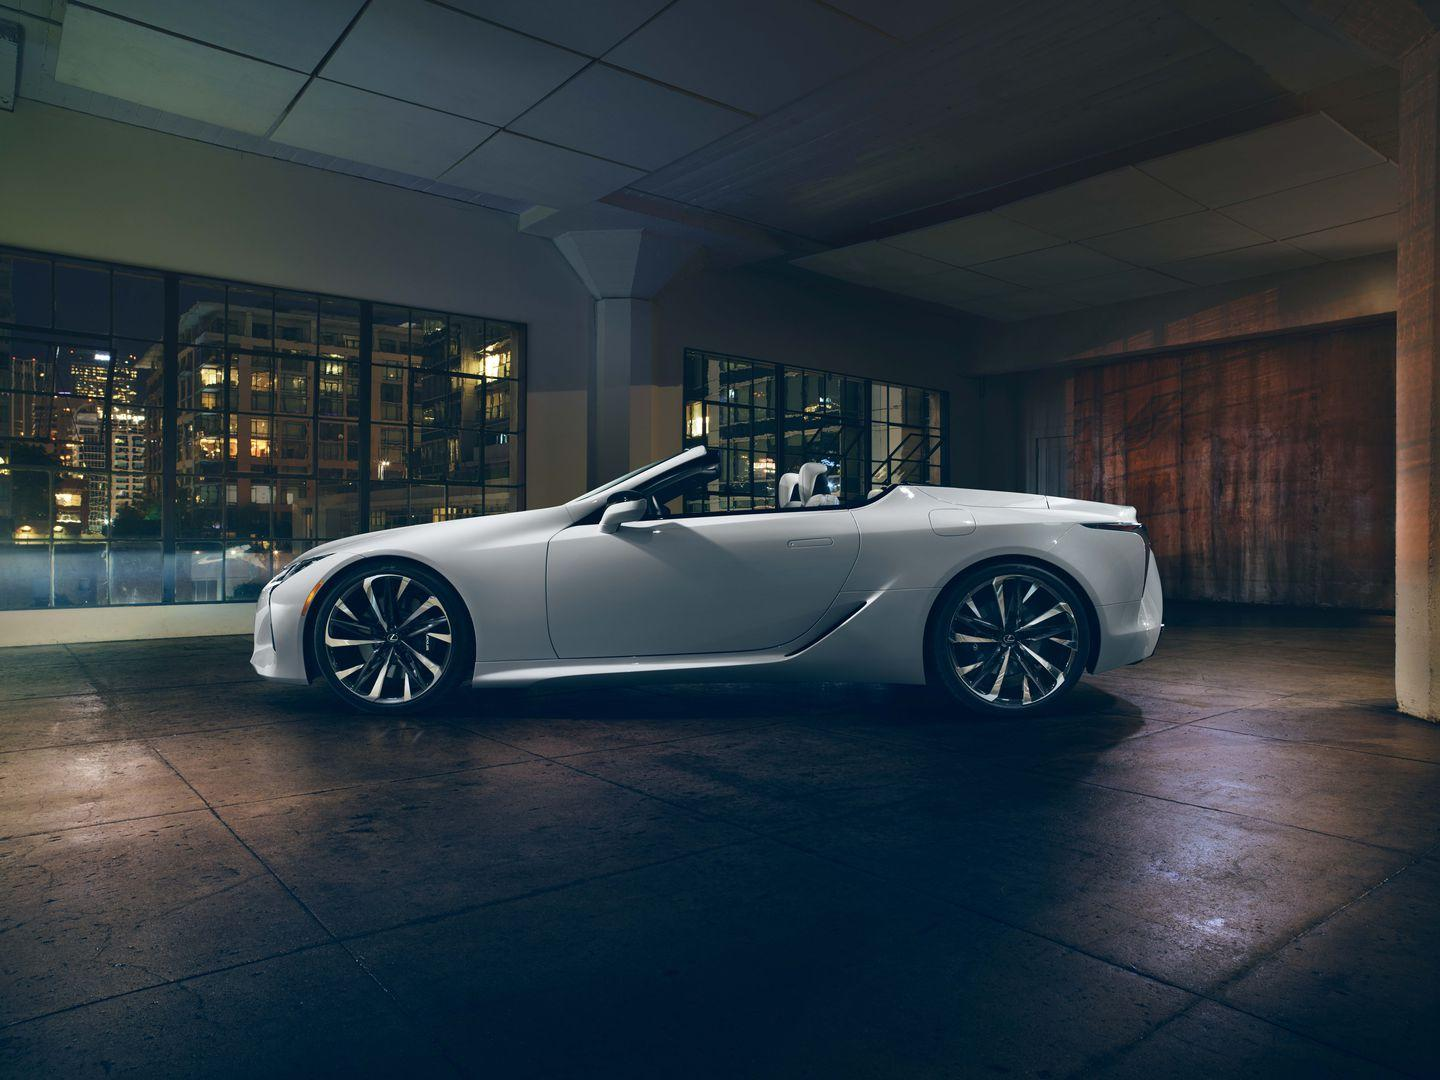 <p>Like the hardtop LC, the topless convertible has a rakish stance and voluptuous body contours.</p>